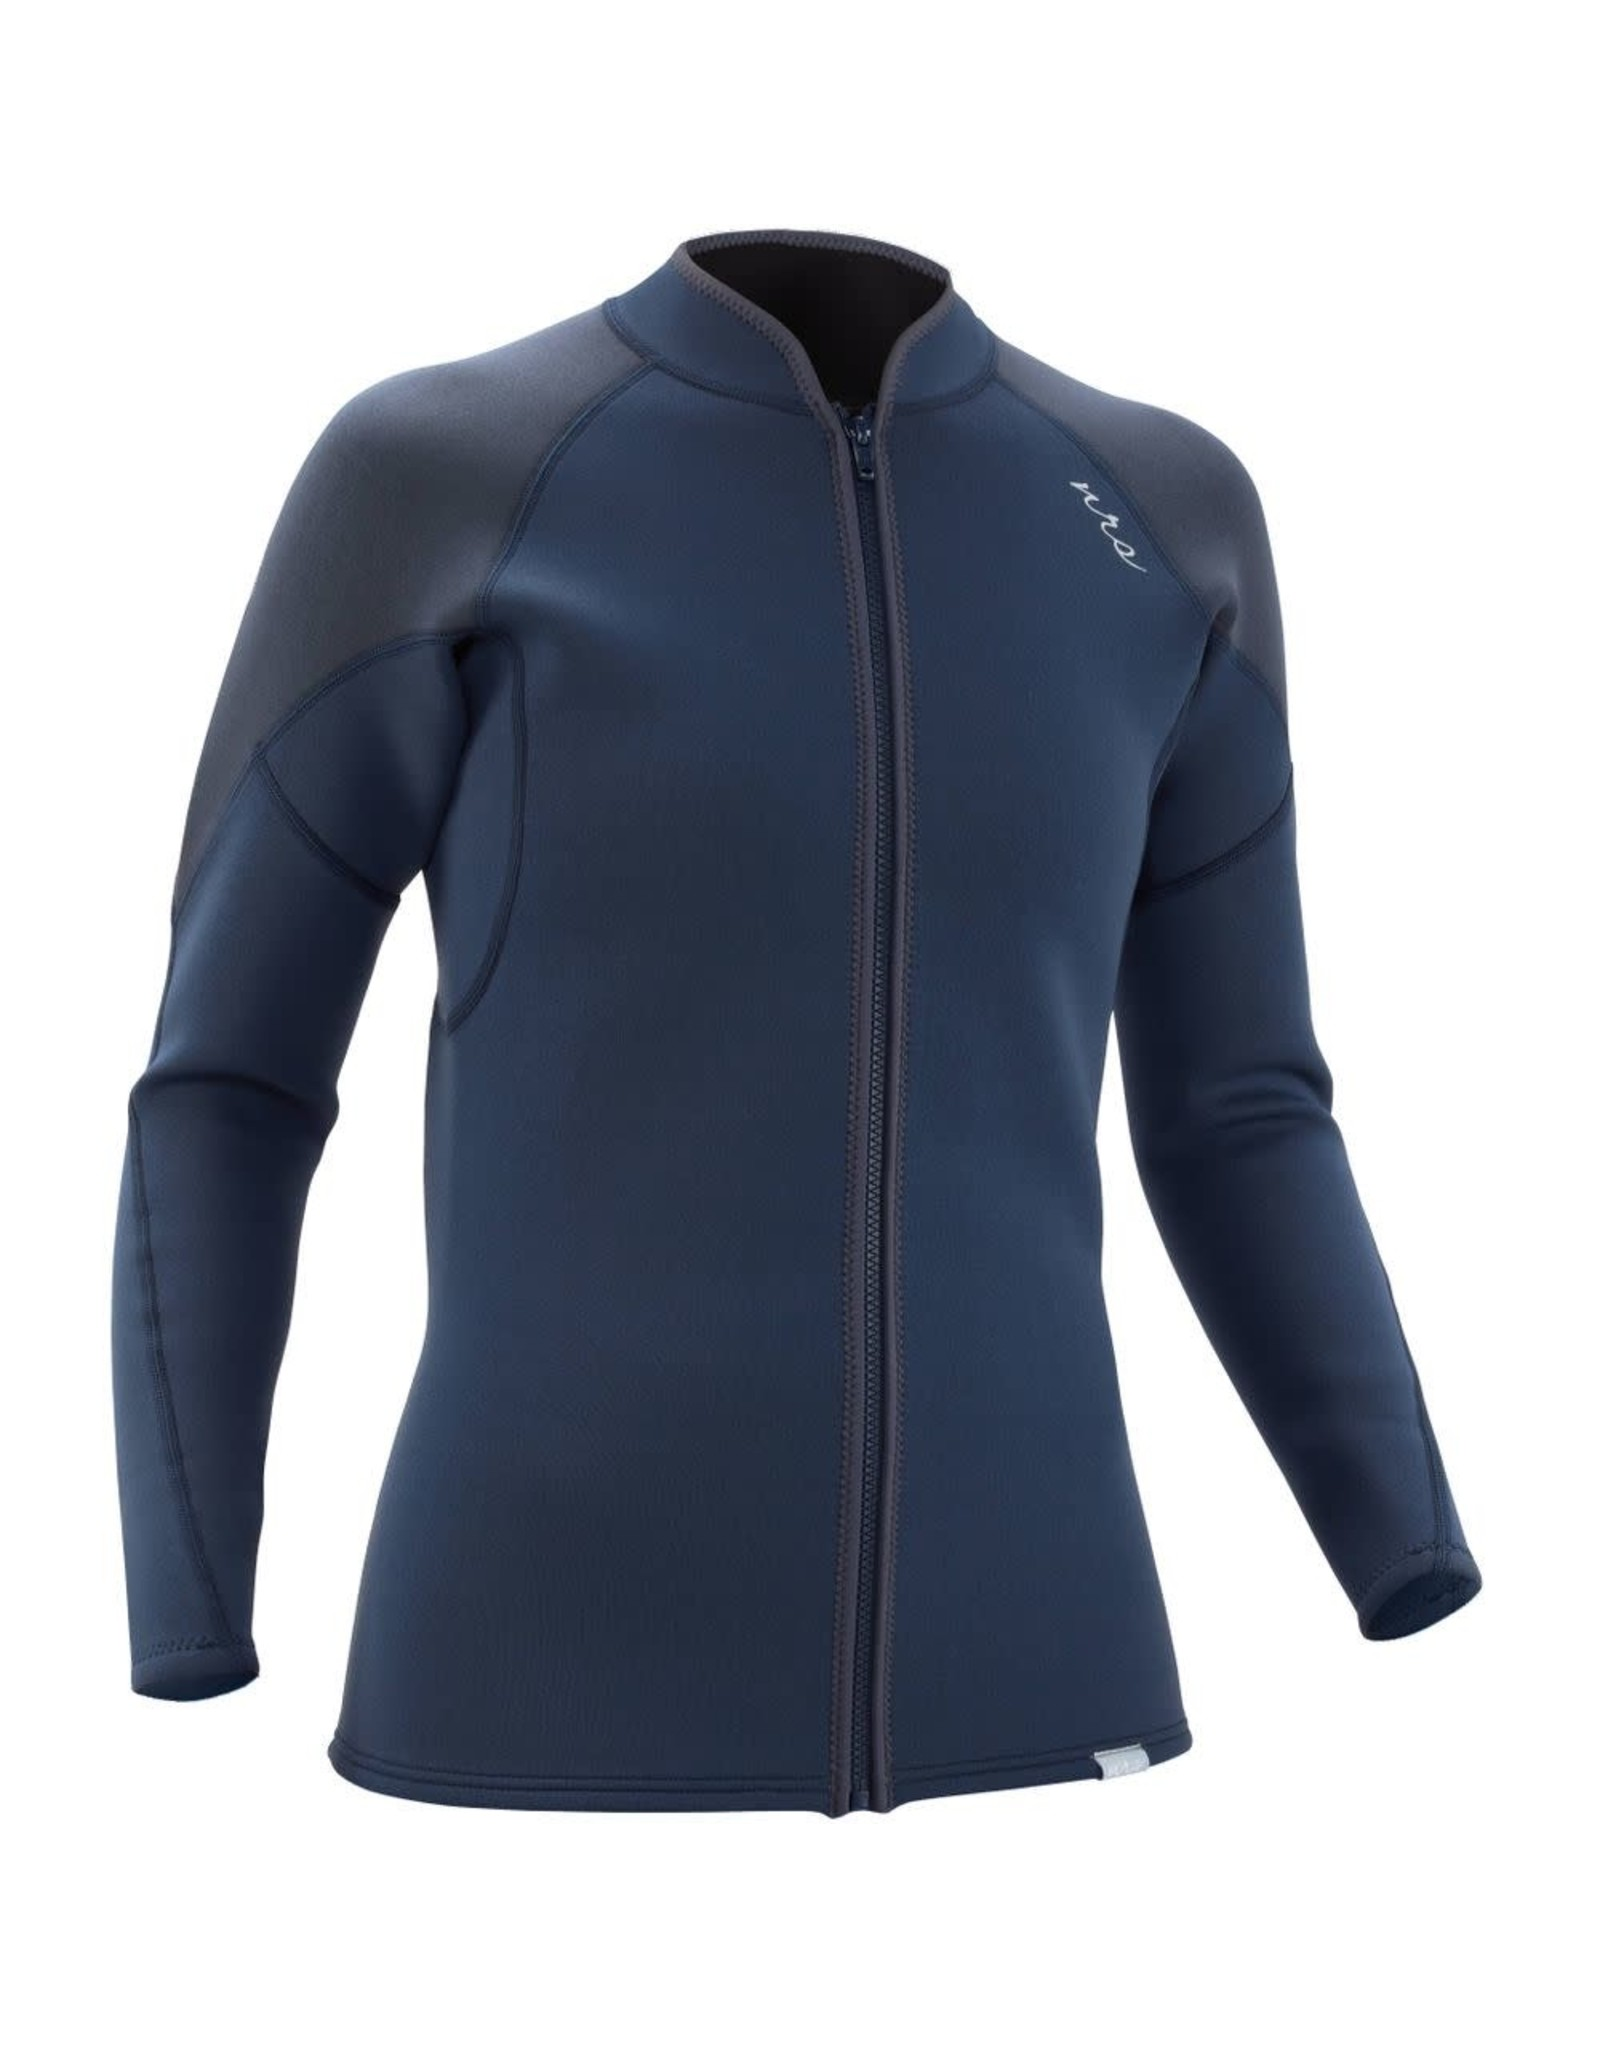 NRS Canada NRS Women's Ignitor Jacket